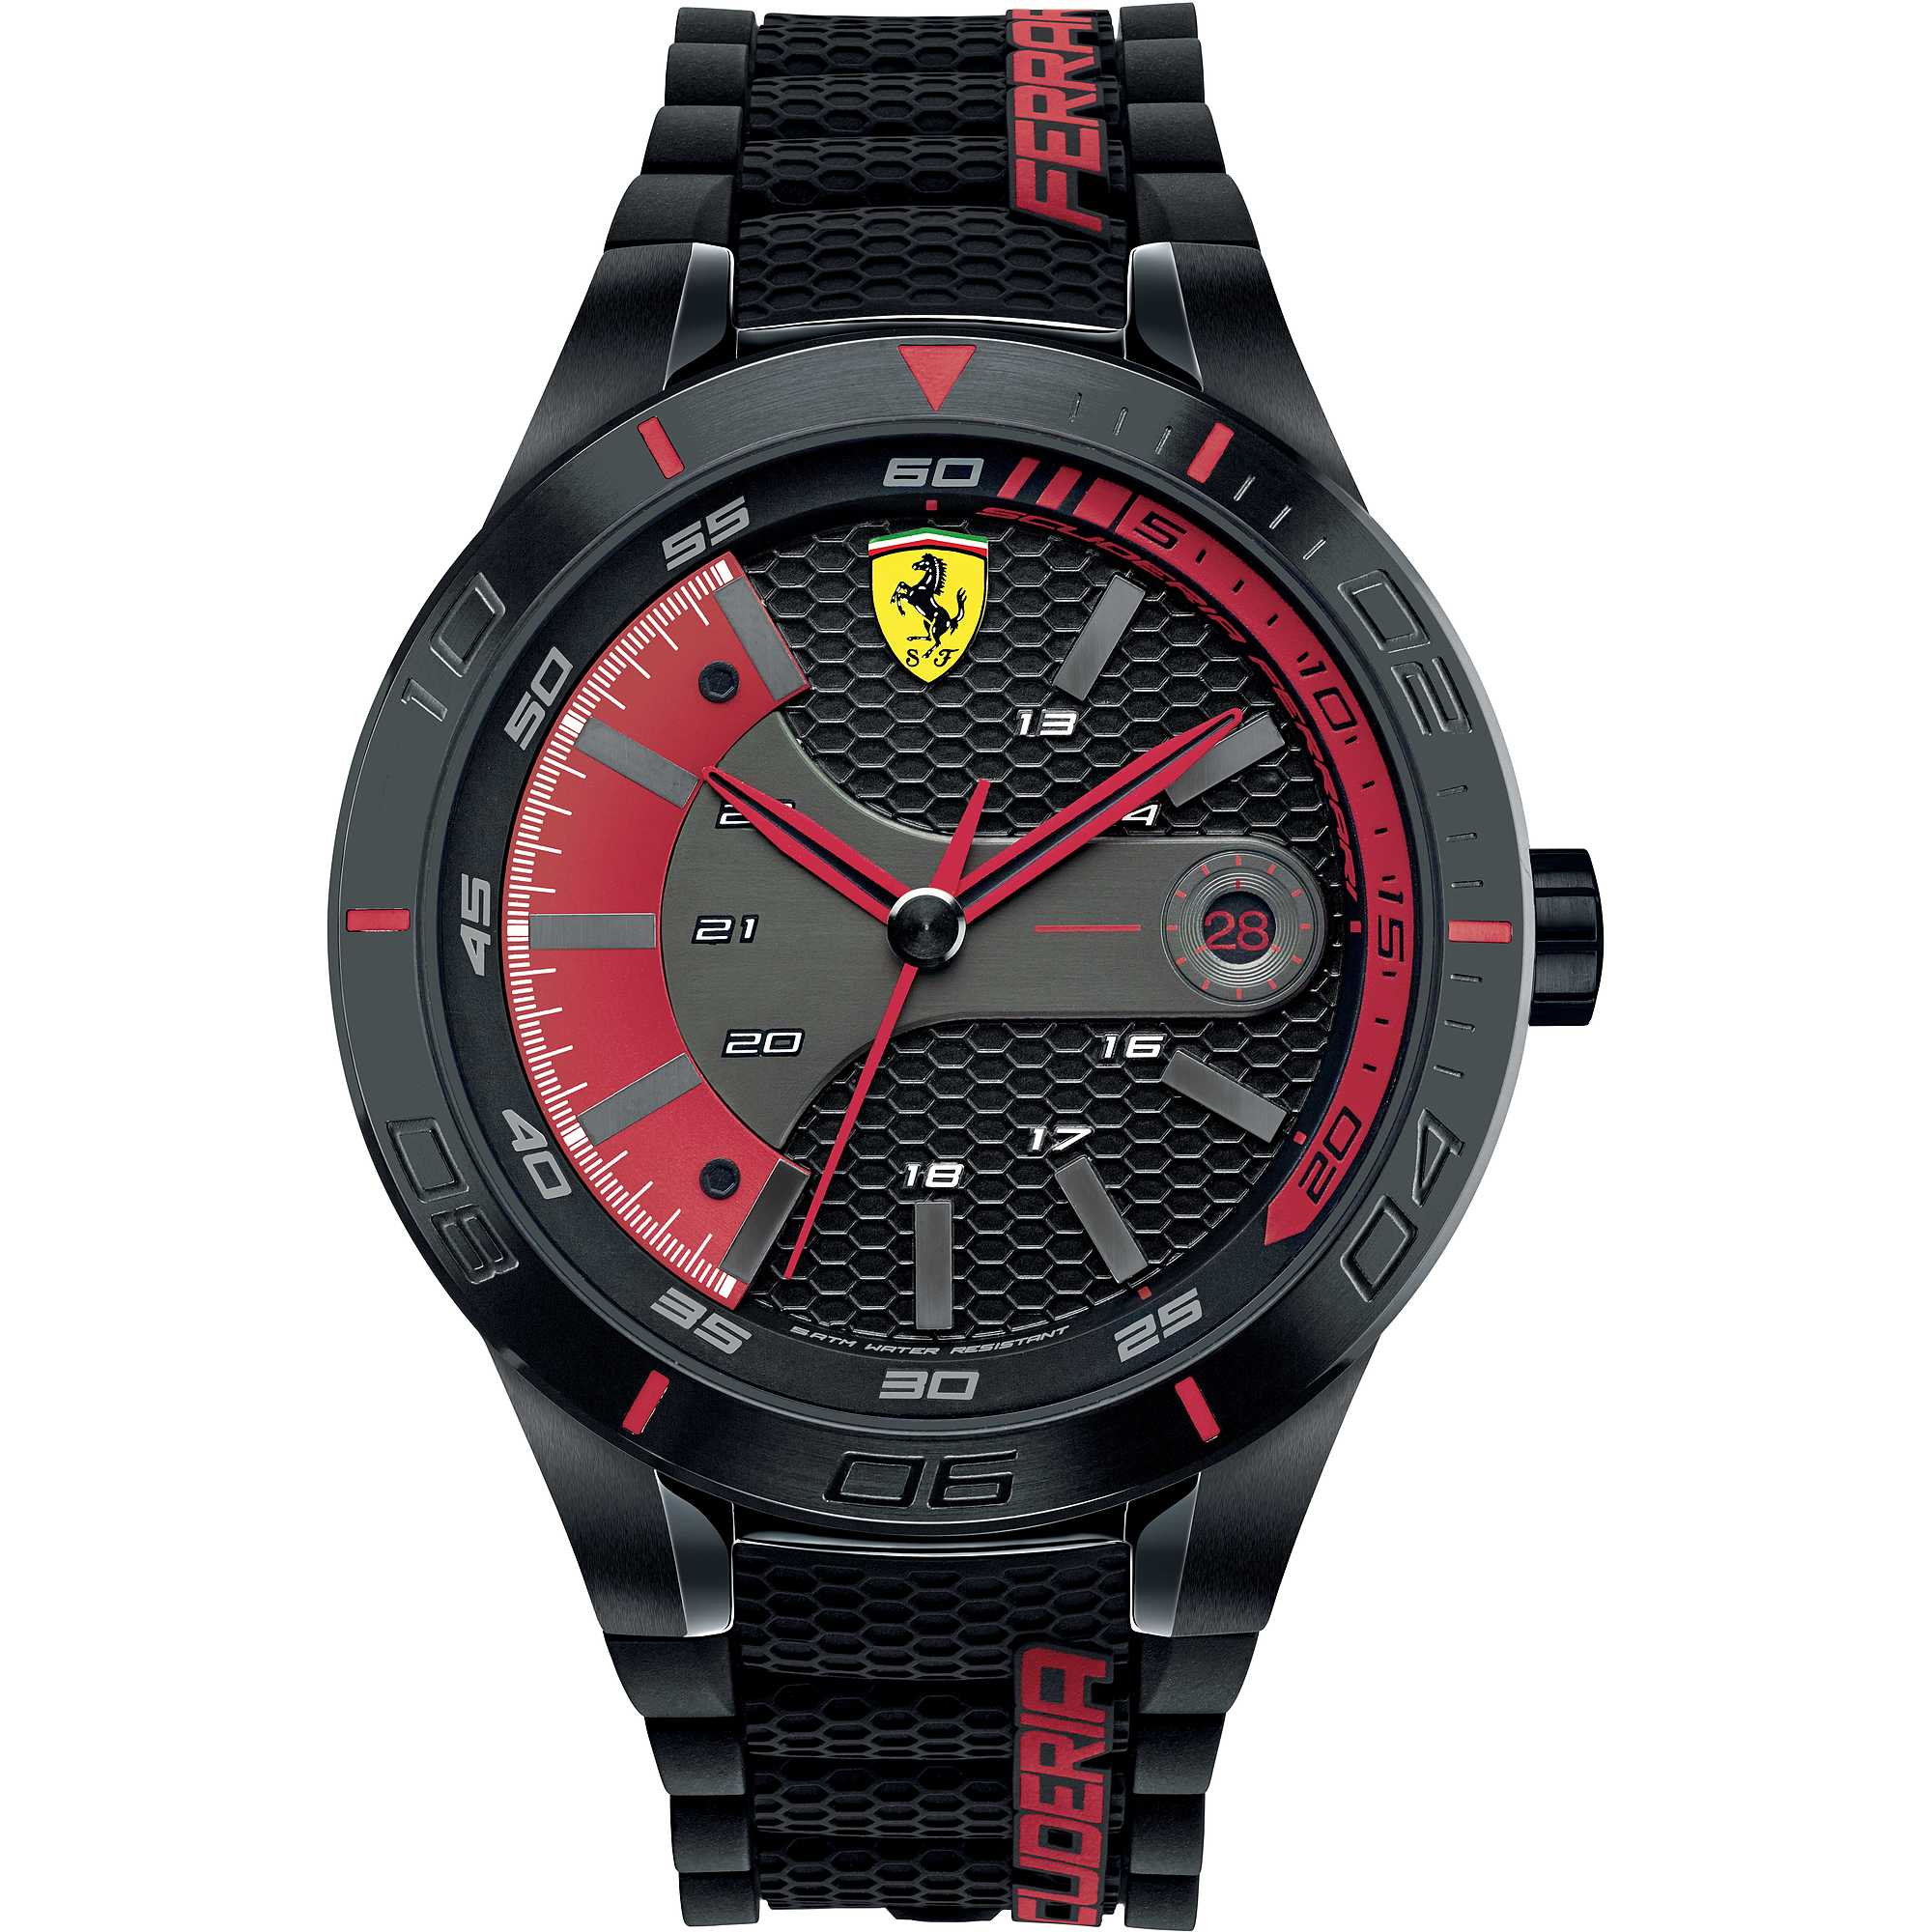 montre multifonction homme scuderia ferrari red fer0830265 seul le temps scuderia ferrari. Black Bedroom Furniture Sets. Home Design Ideas